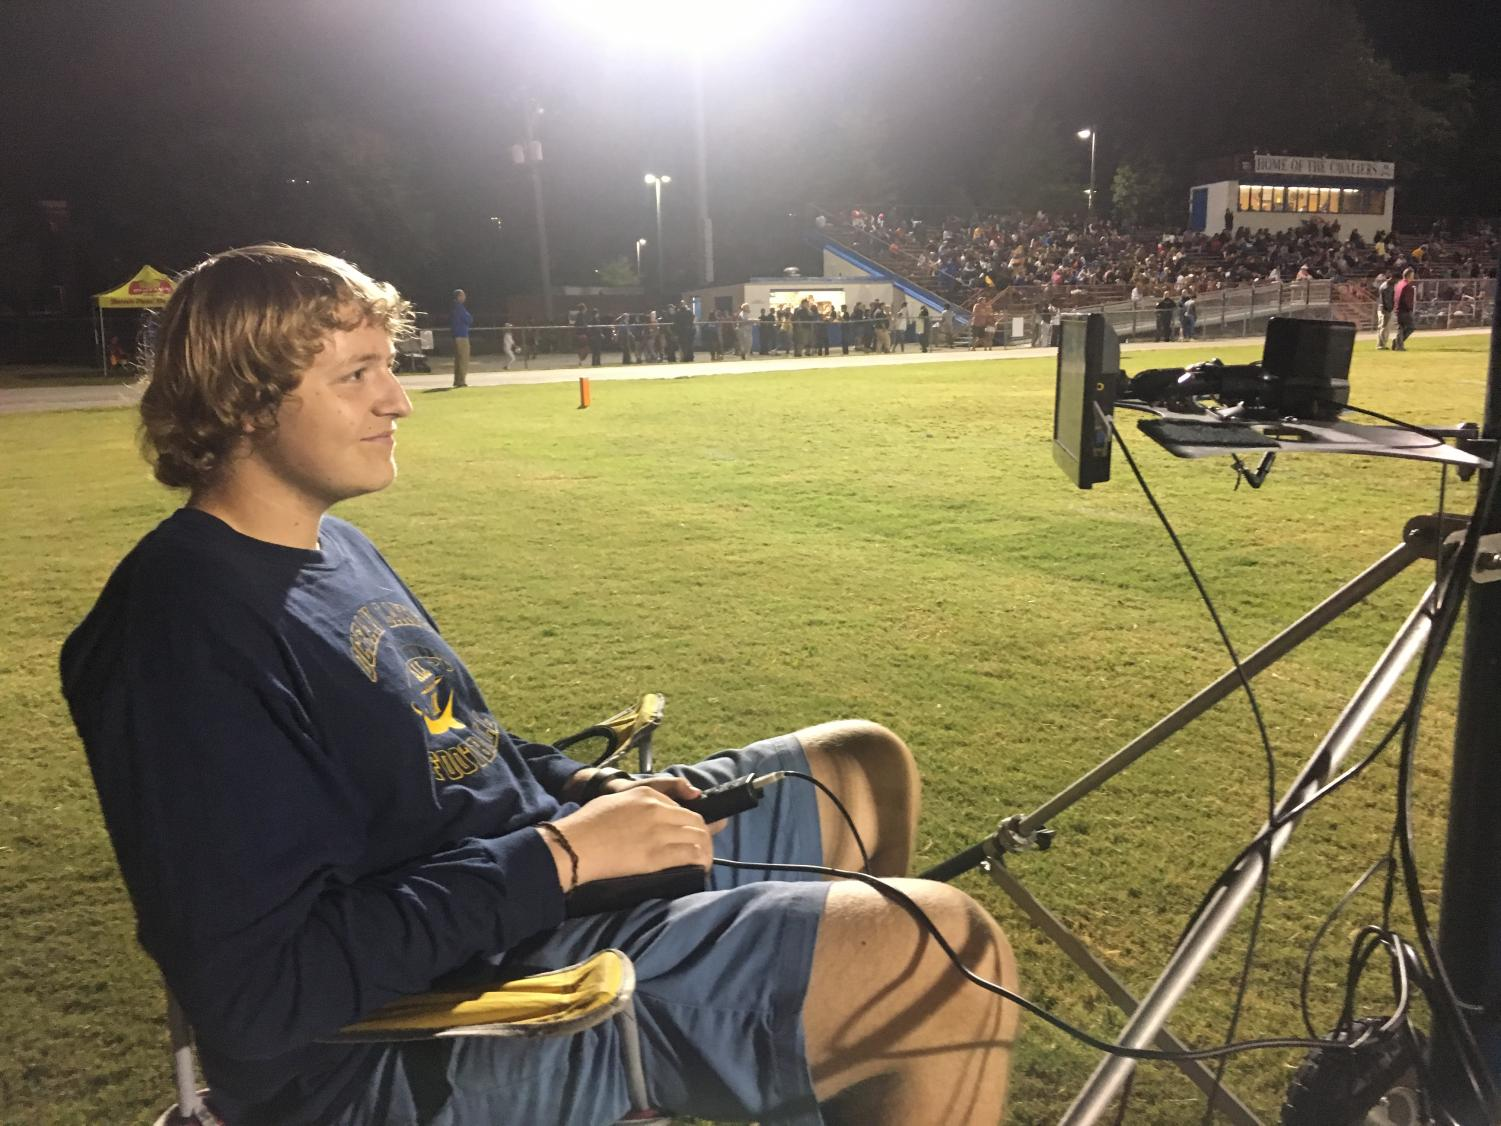 Jackson Ploeger takes pictures in the end zone at the Princess Anne game on Sept. 20, 2019.